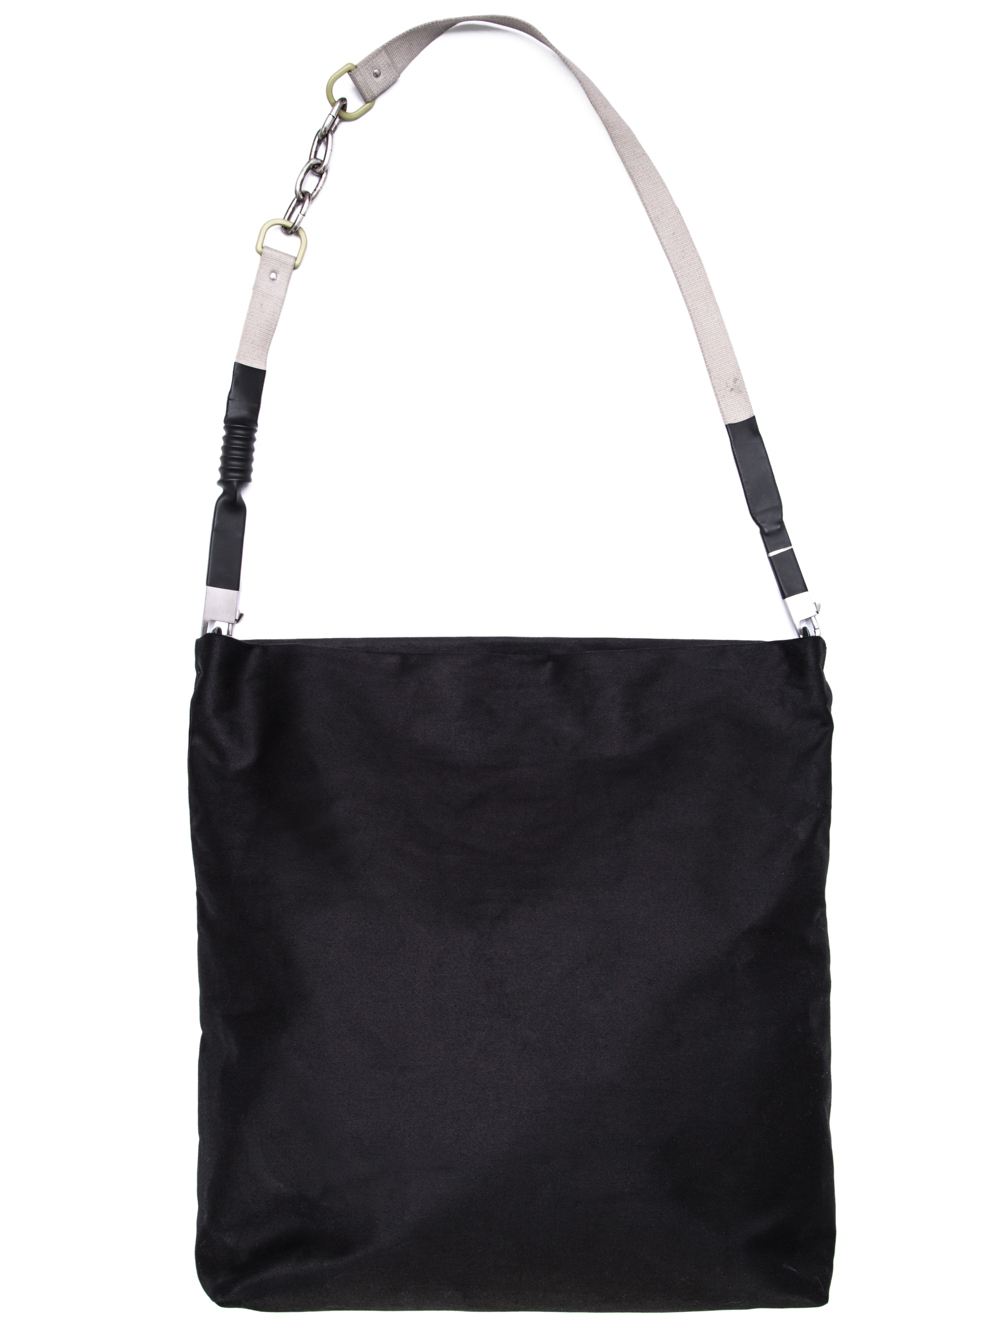 RICK OWENS OFF-THE-RUNWAY CARGO ADRI BAG IN BLACK COTTON